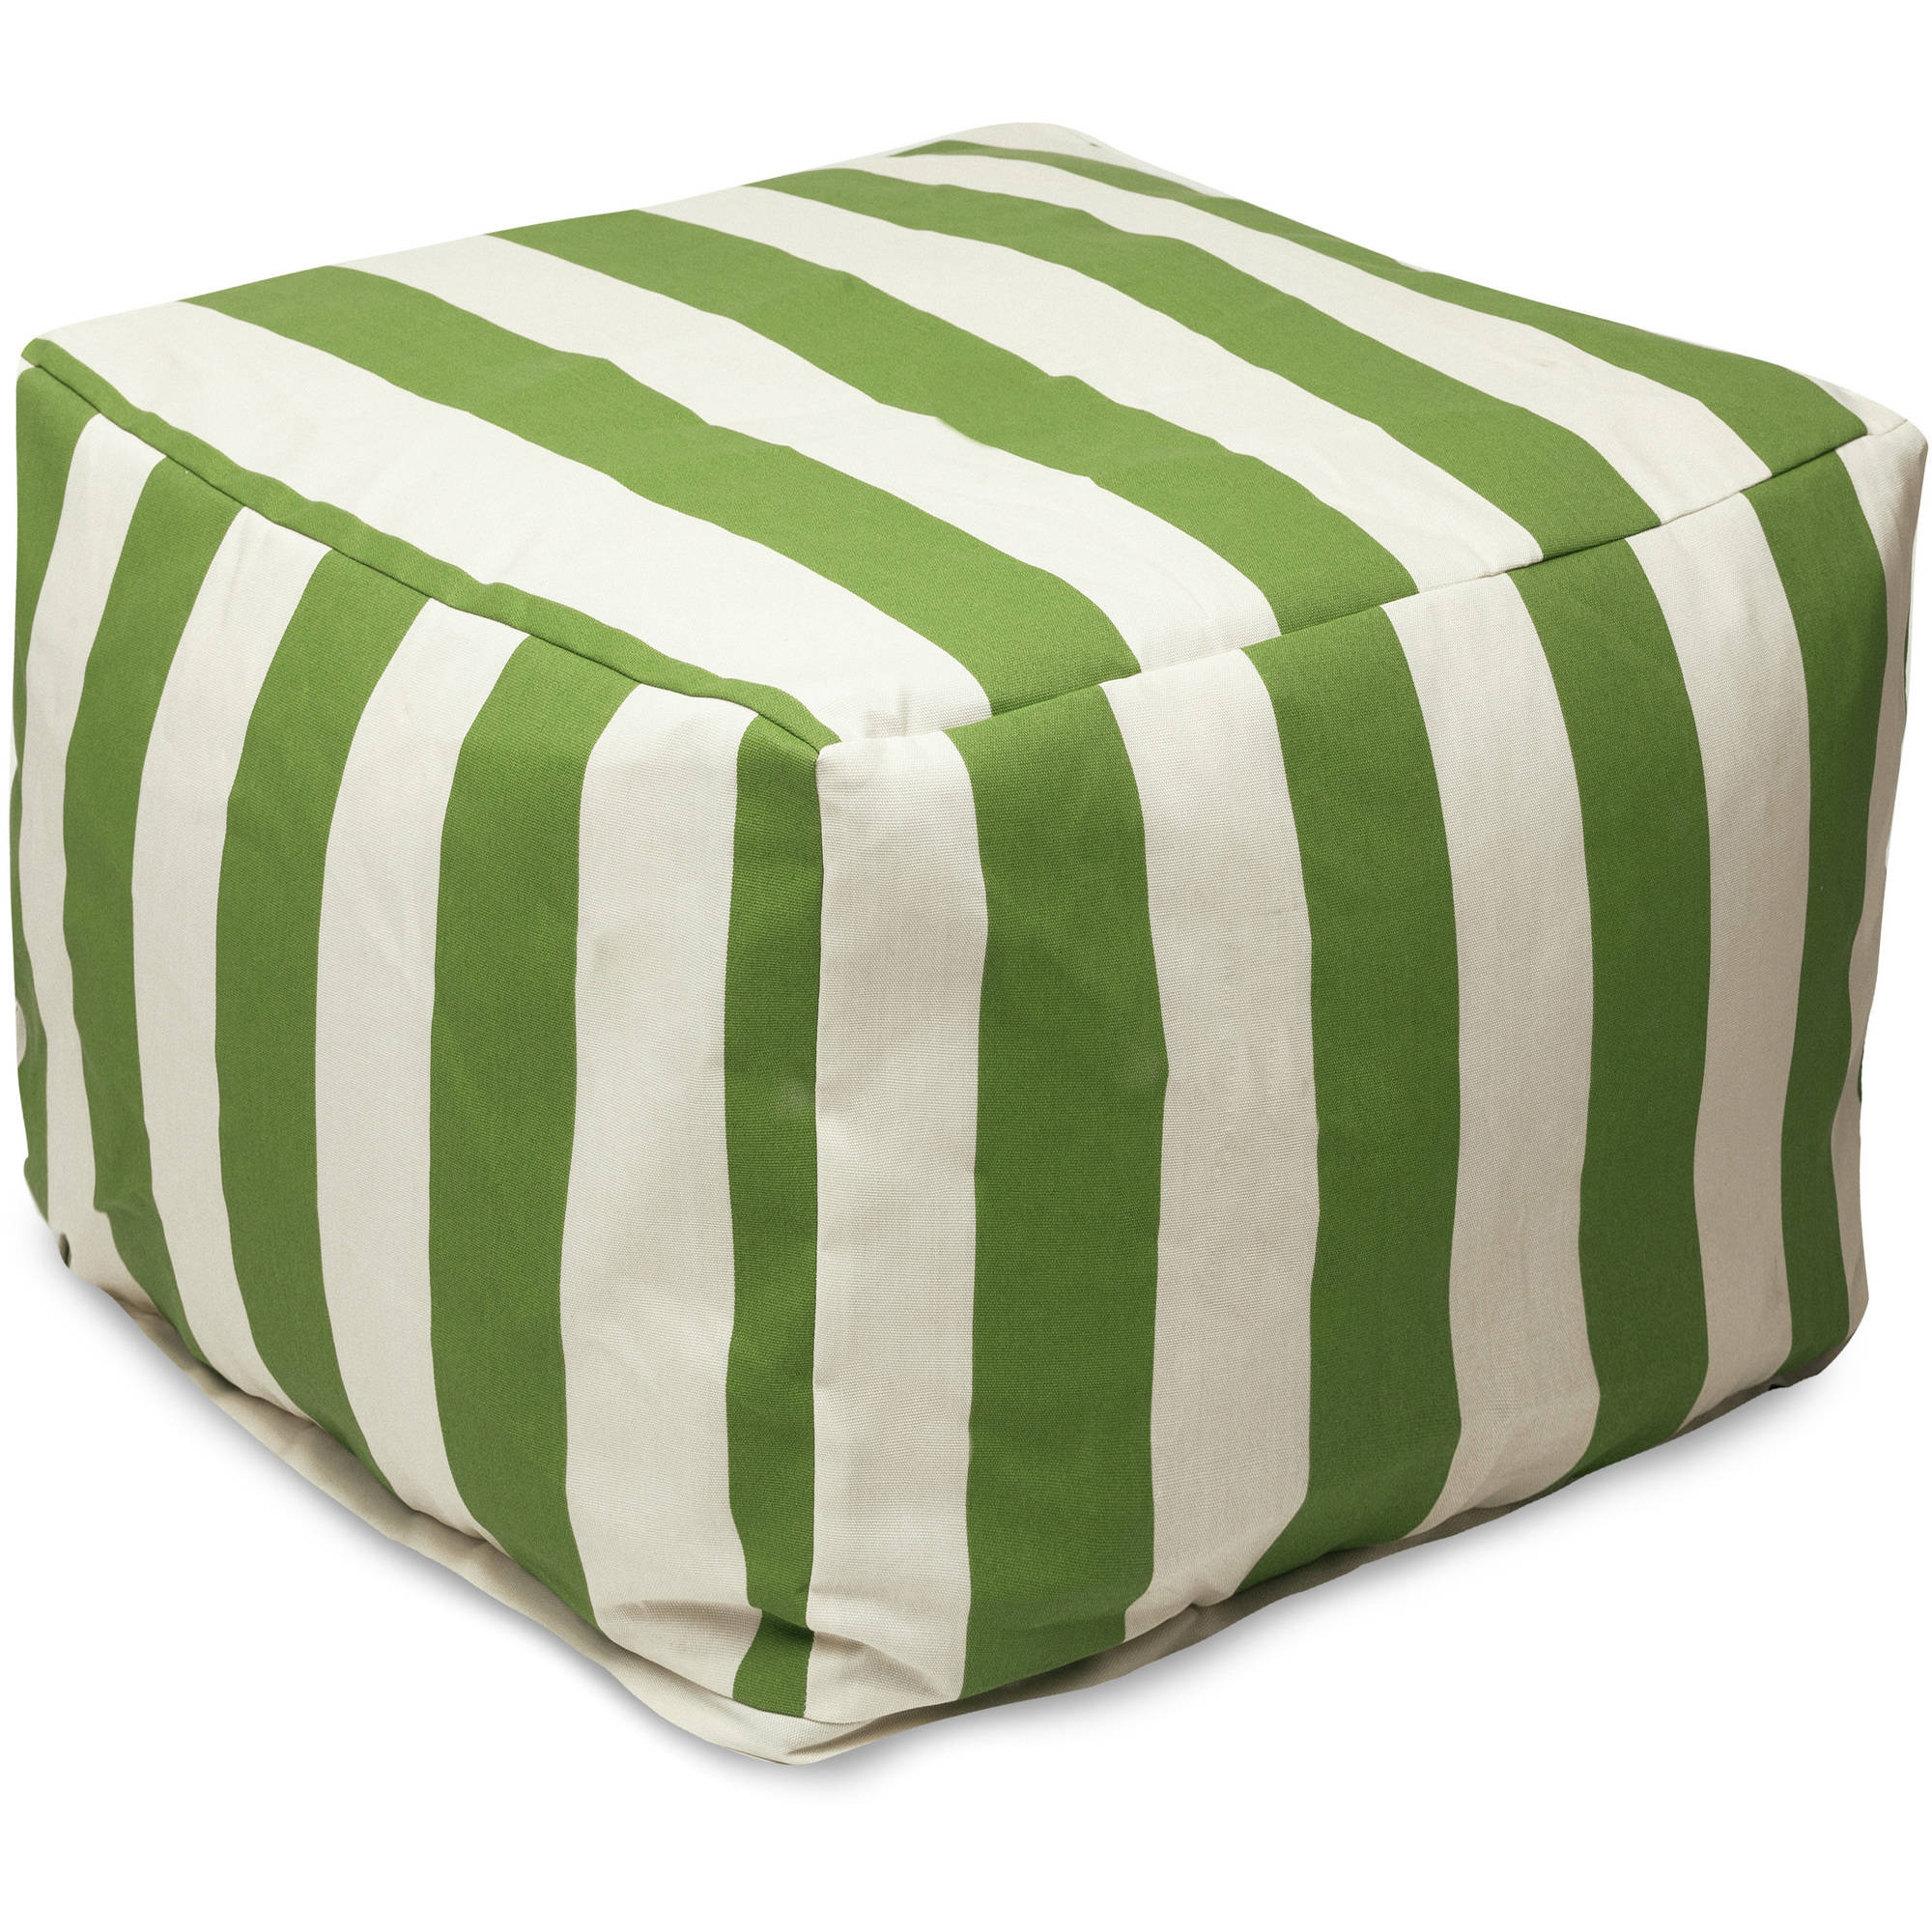 Majestic Home Goods Vertical Stripe Bean Bag Ottoman, Indoor/Outdoor